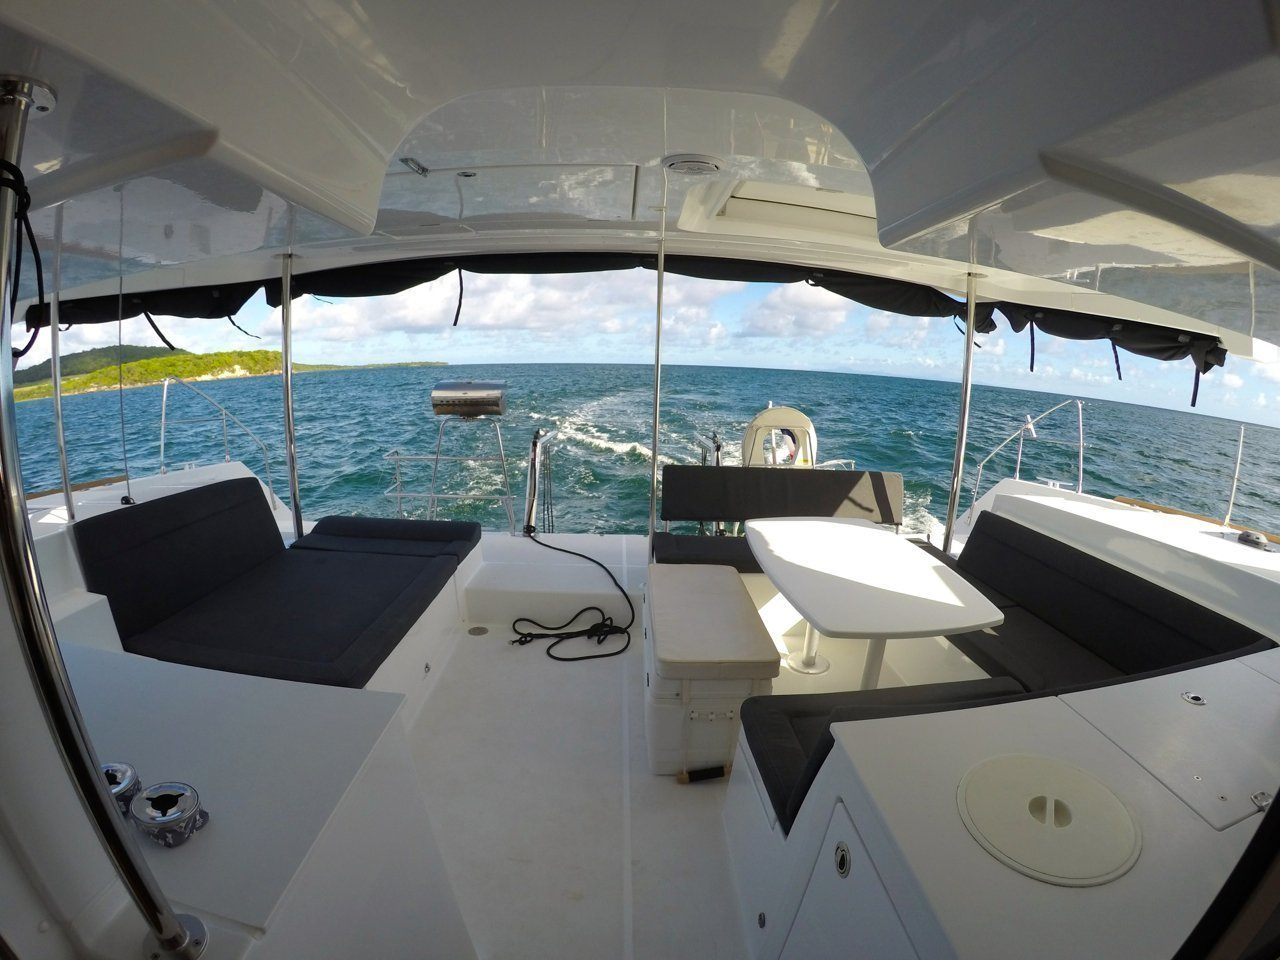 New Lagoon 450 F Premium // With Watermaker (Take Off)  - 1